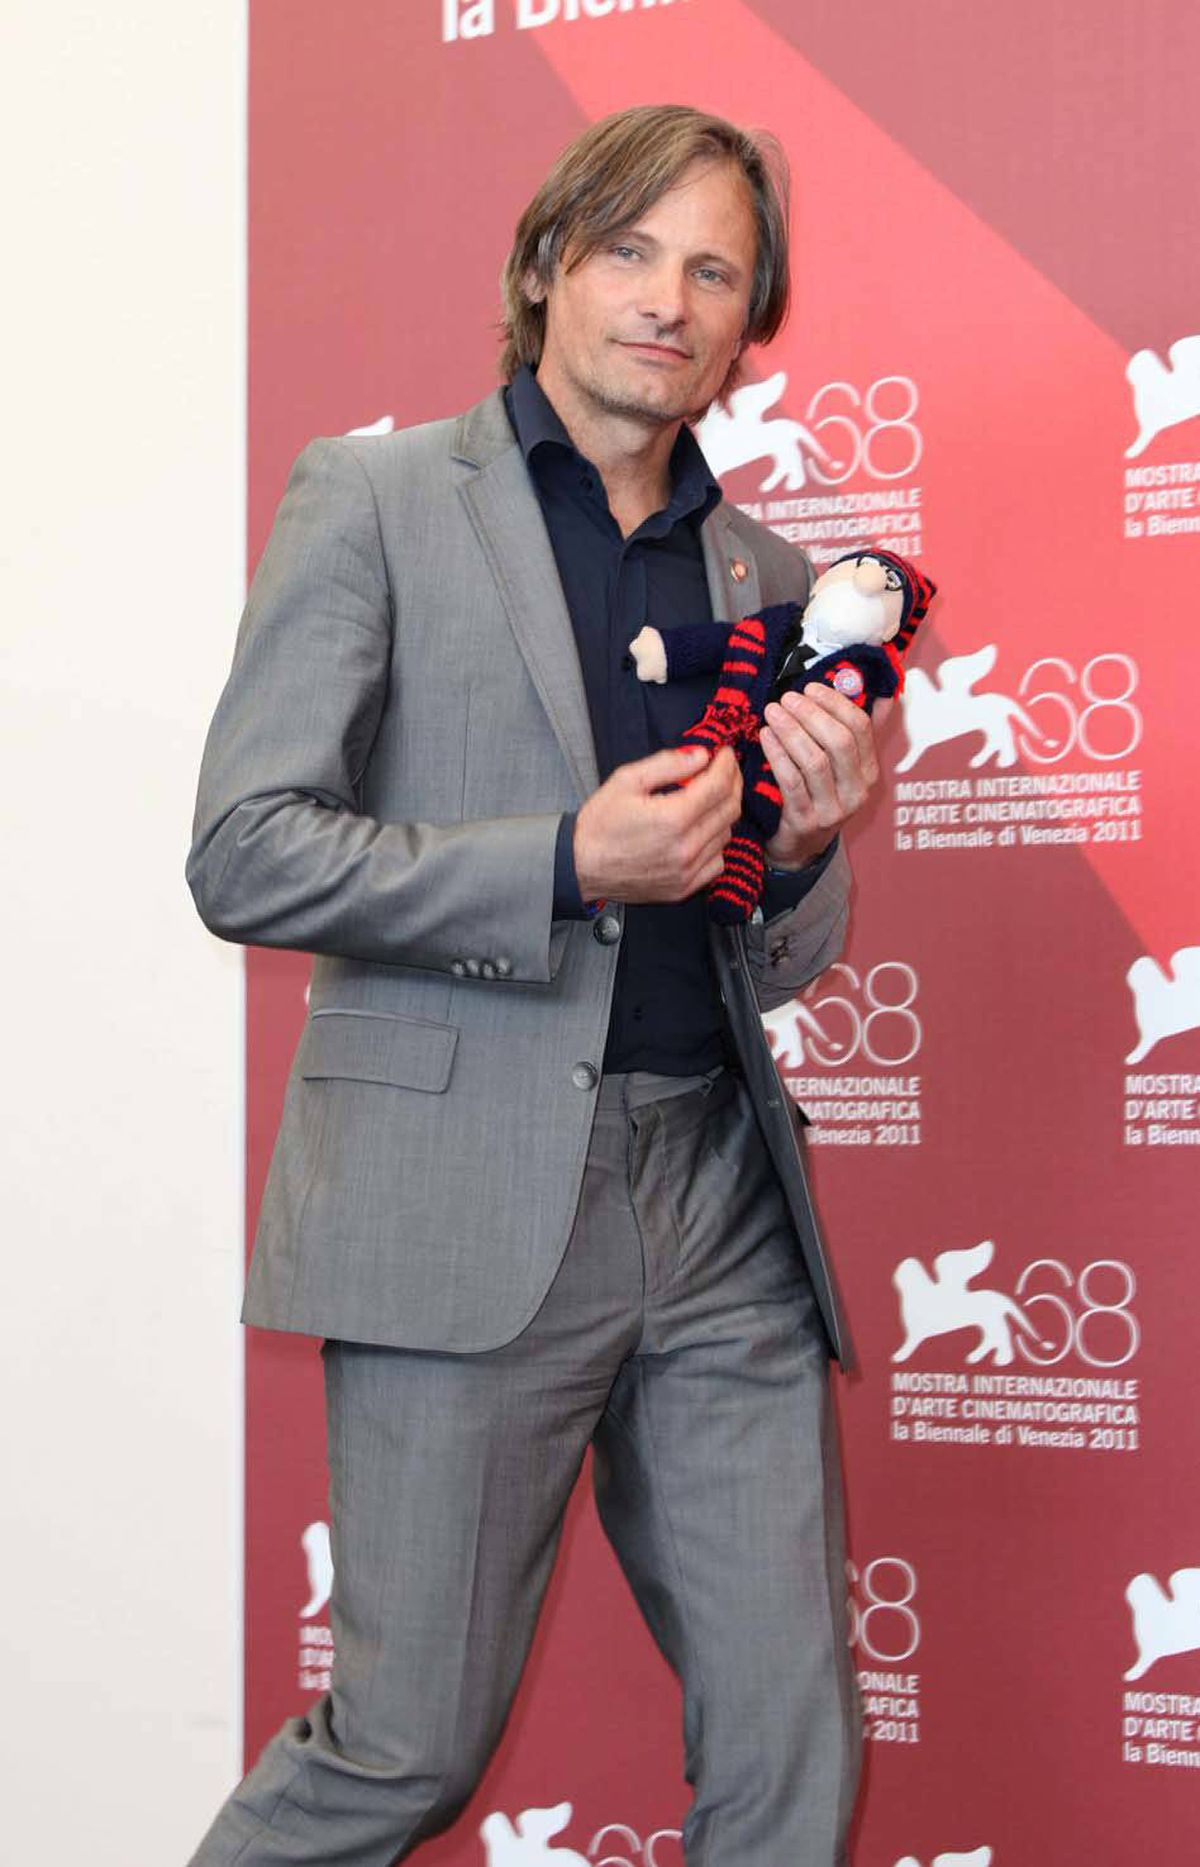 Danish actor Viggo Mortensen poses with a doll given to him by a fan at the Venice Film Festival on Friday.